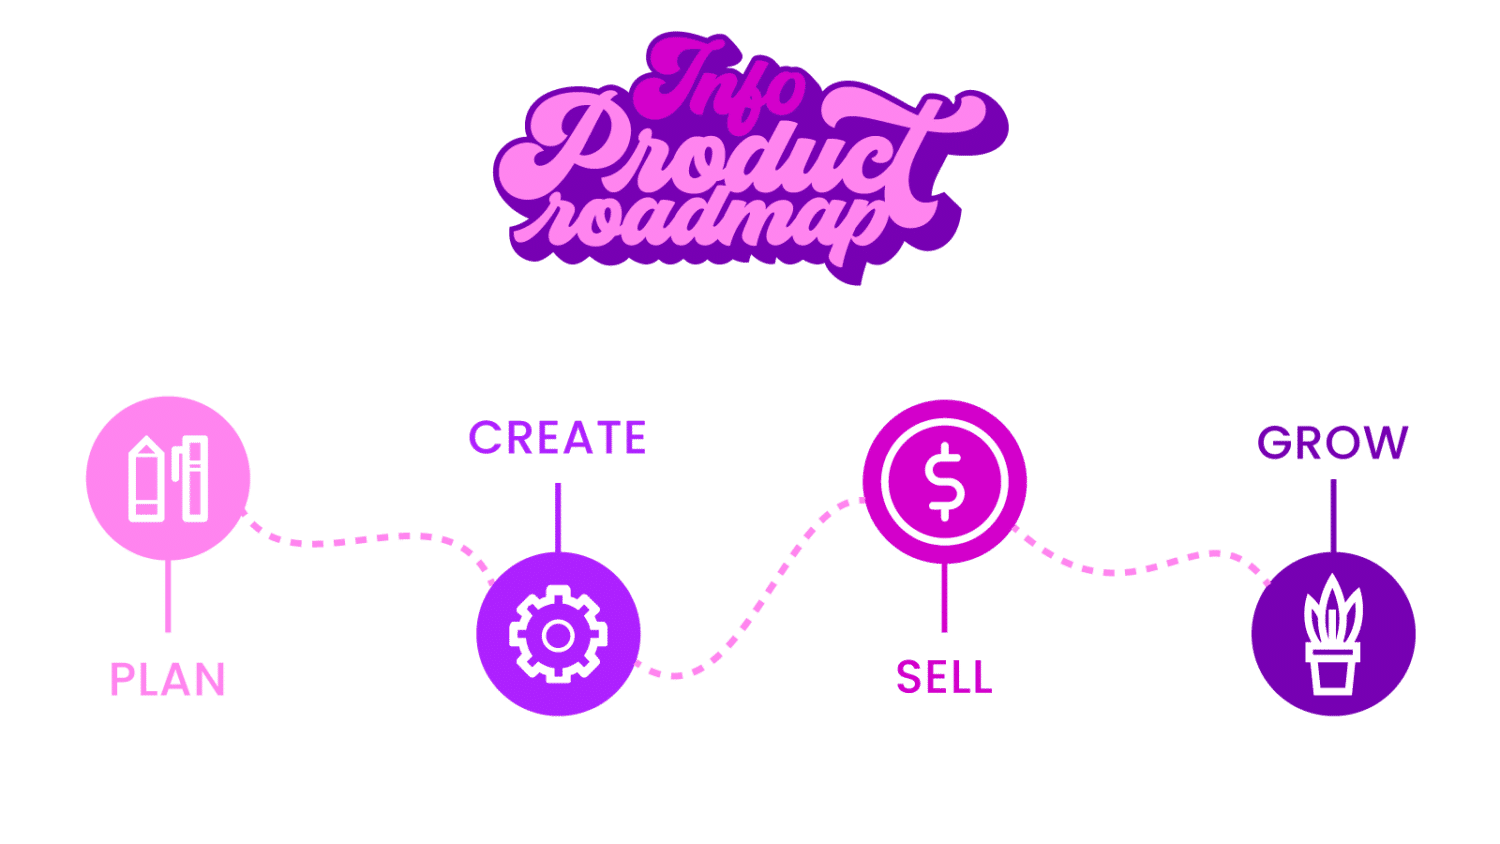 Info Product Roadmap - Breakdown of the steps to create an information product